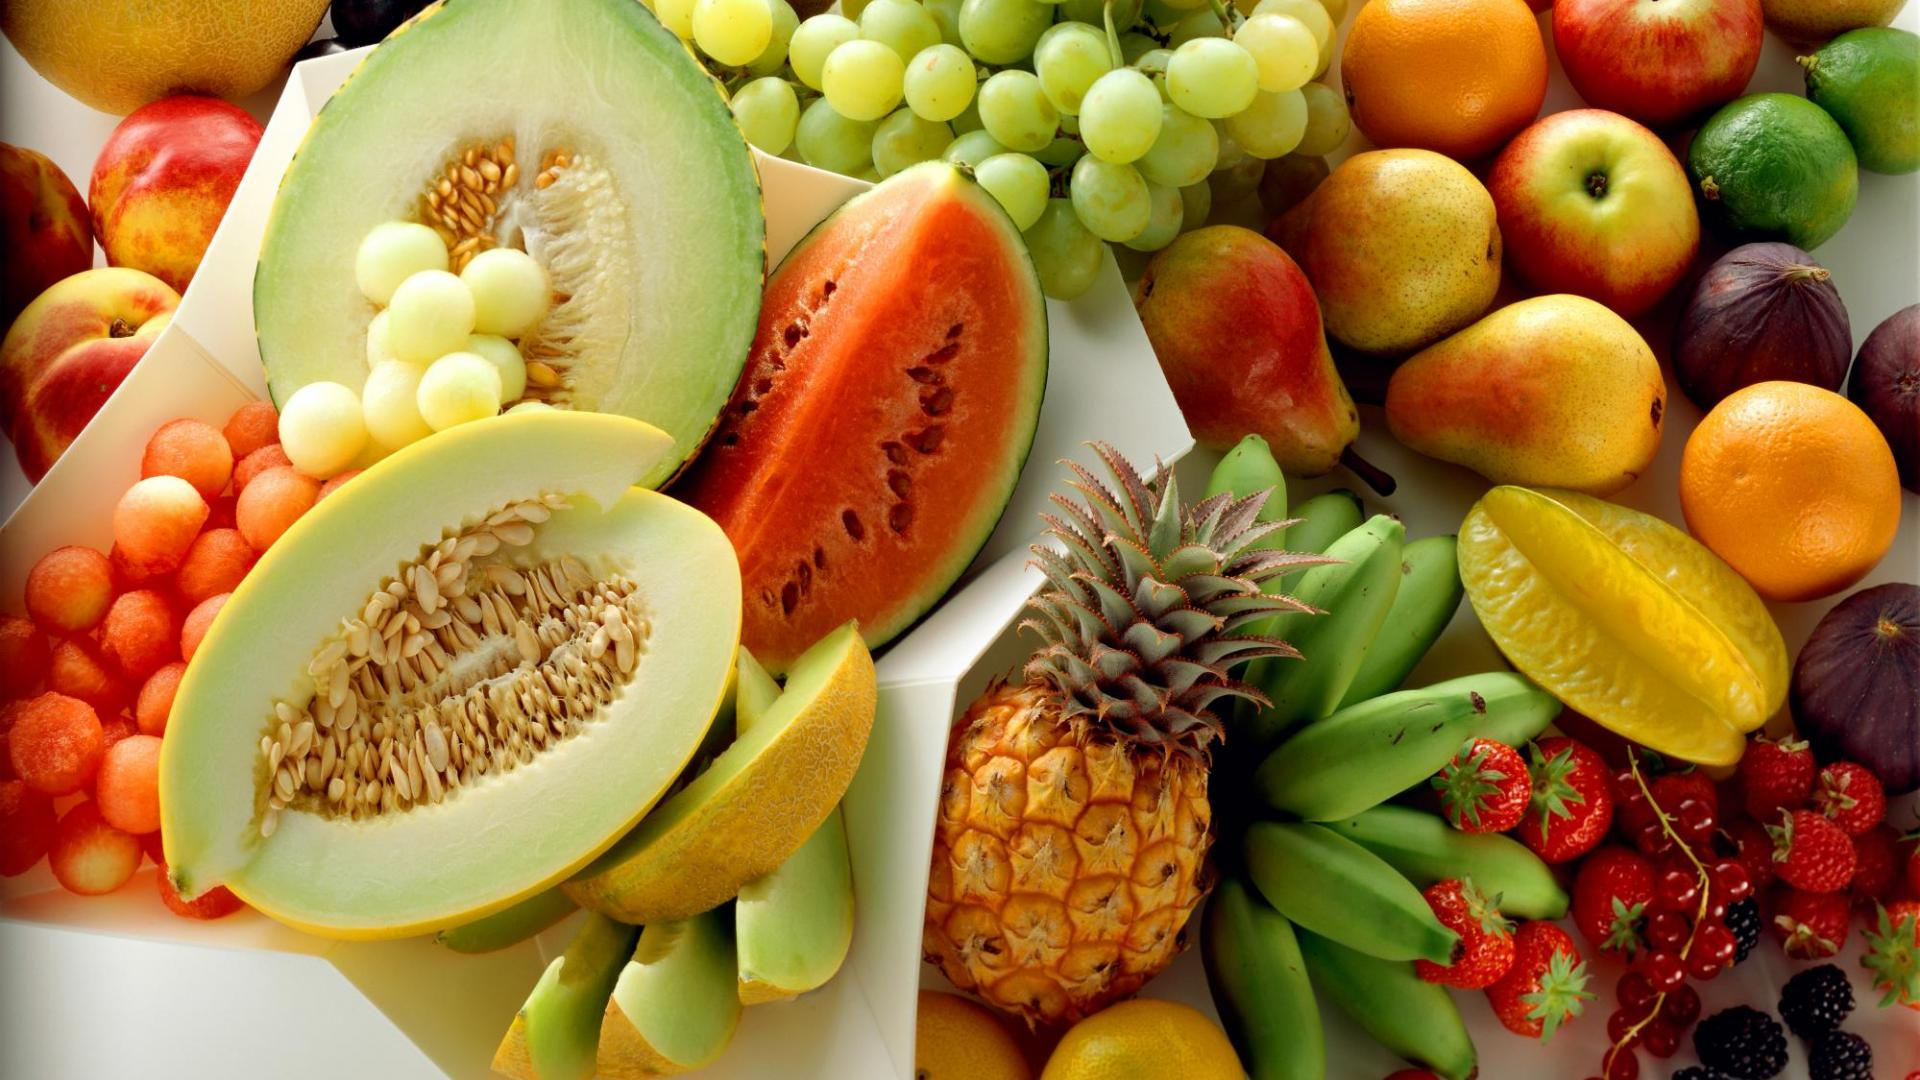 Fruit Wallpapers High Quality | Download Free